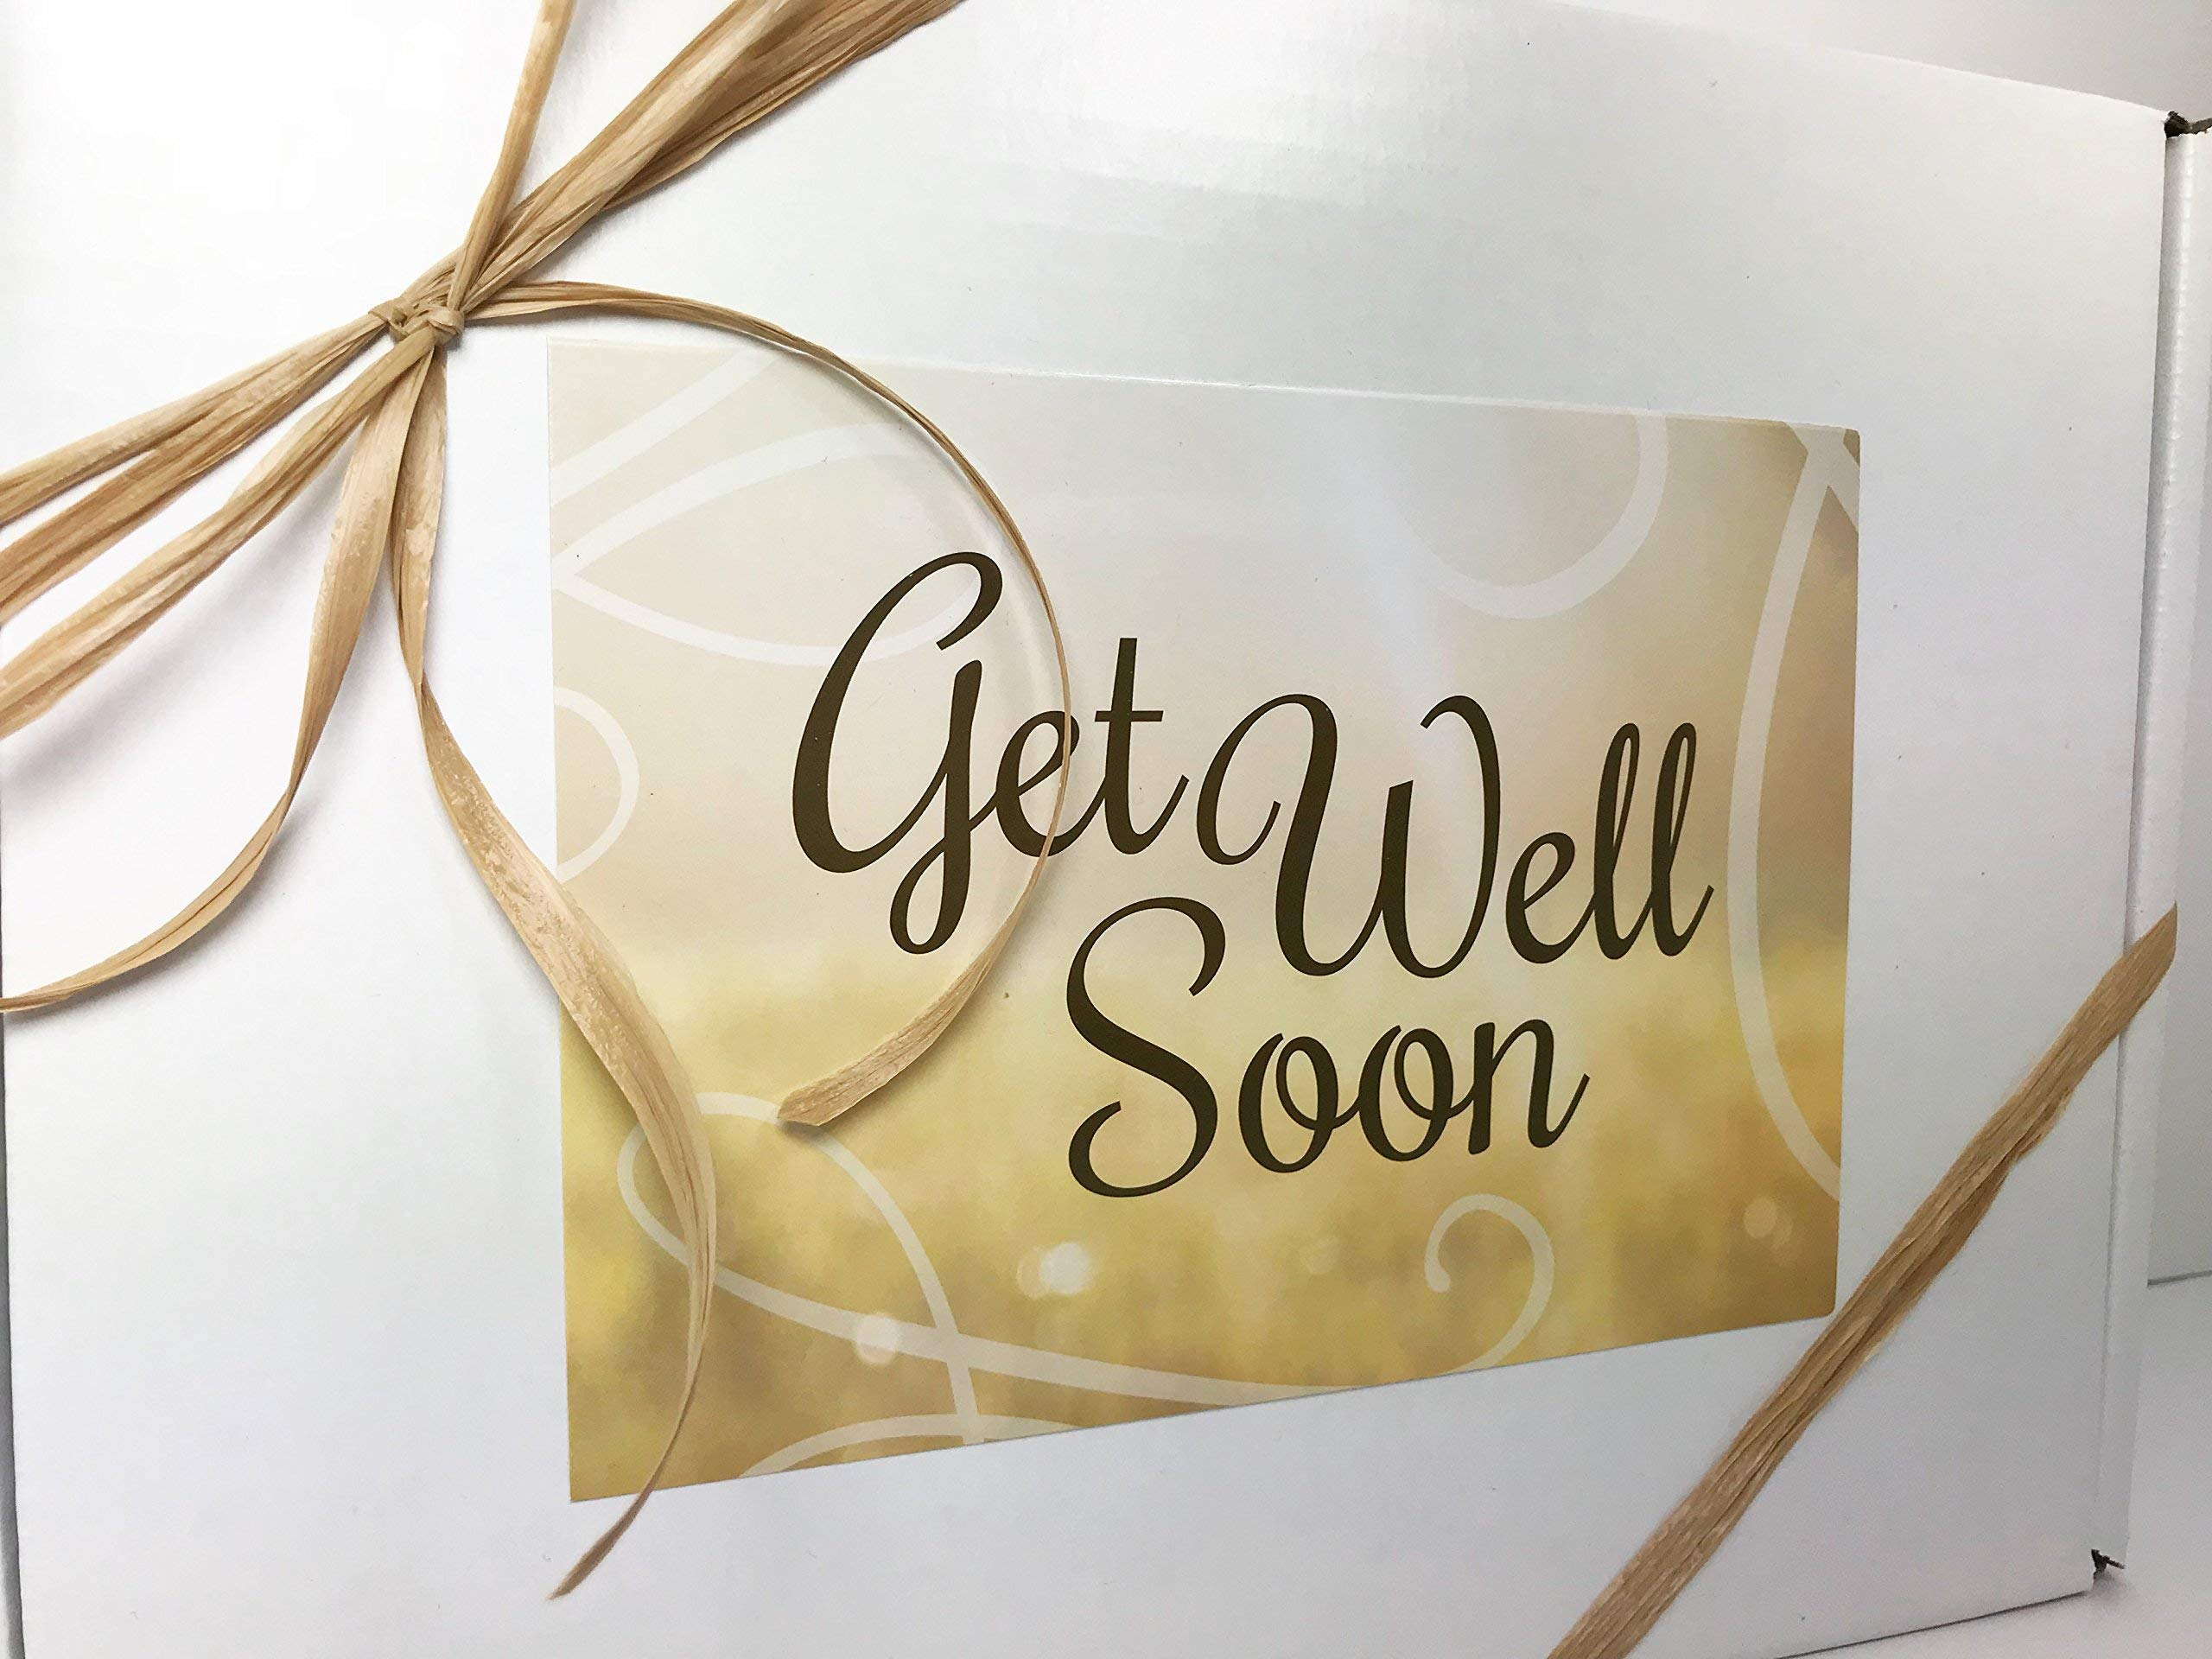 Gourmet Get Well Gift Box Basket - For Cold Flu Illness Surgery Injury- Over 3.5 Pounds of Care, Concern, and Love - Prime Care Package for Men and Women - Send a Smile Today! by Specialty Gift Boxes (Image #3)